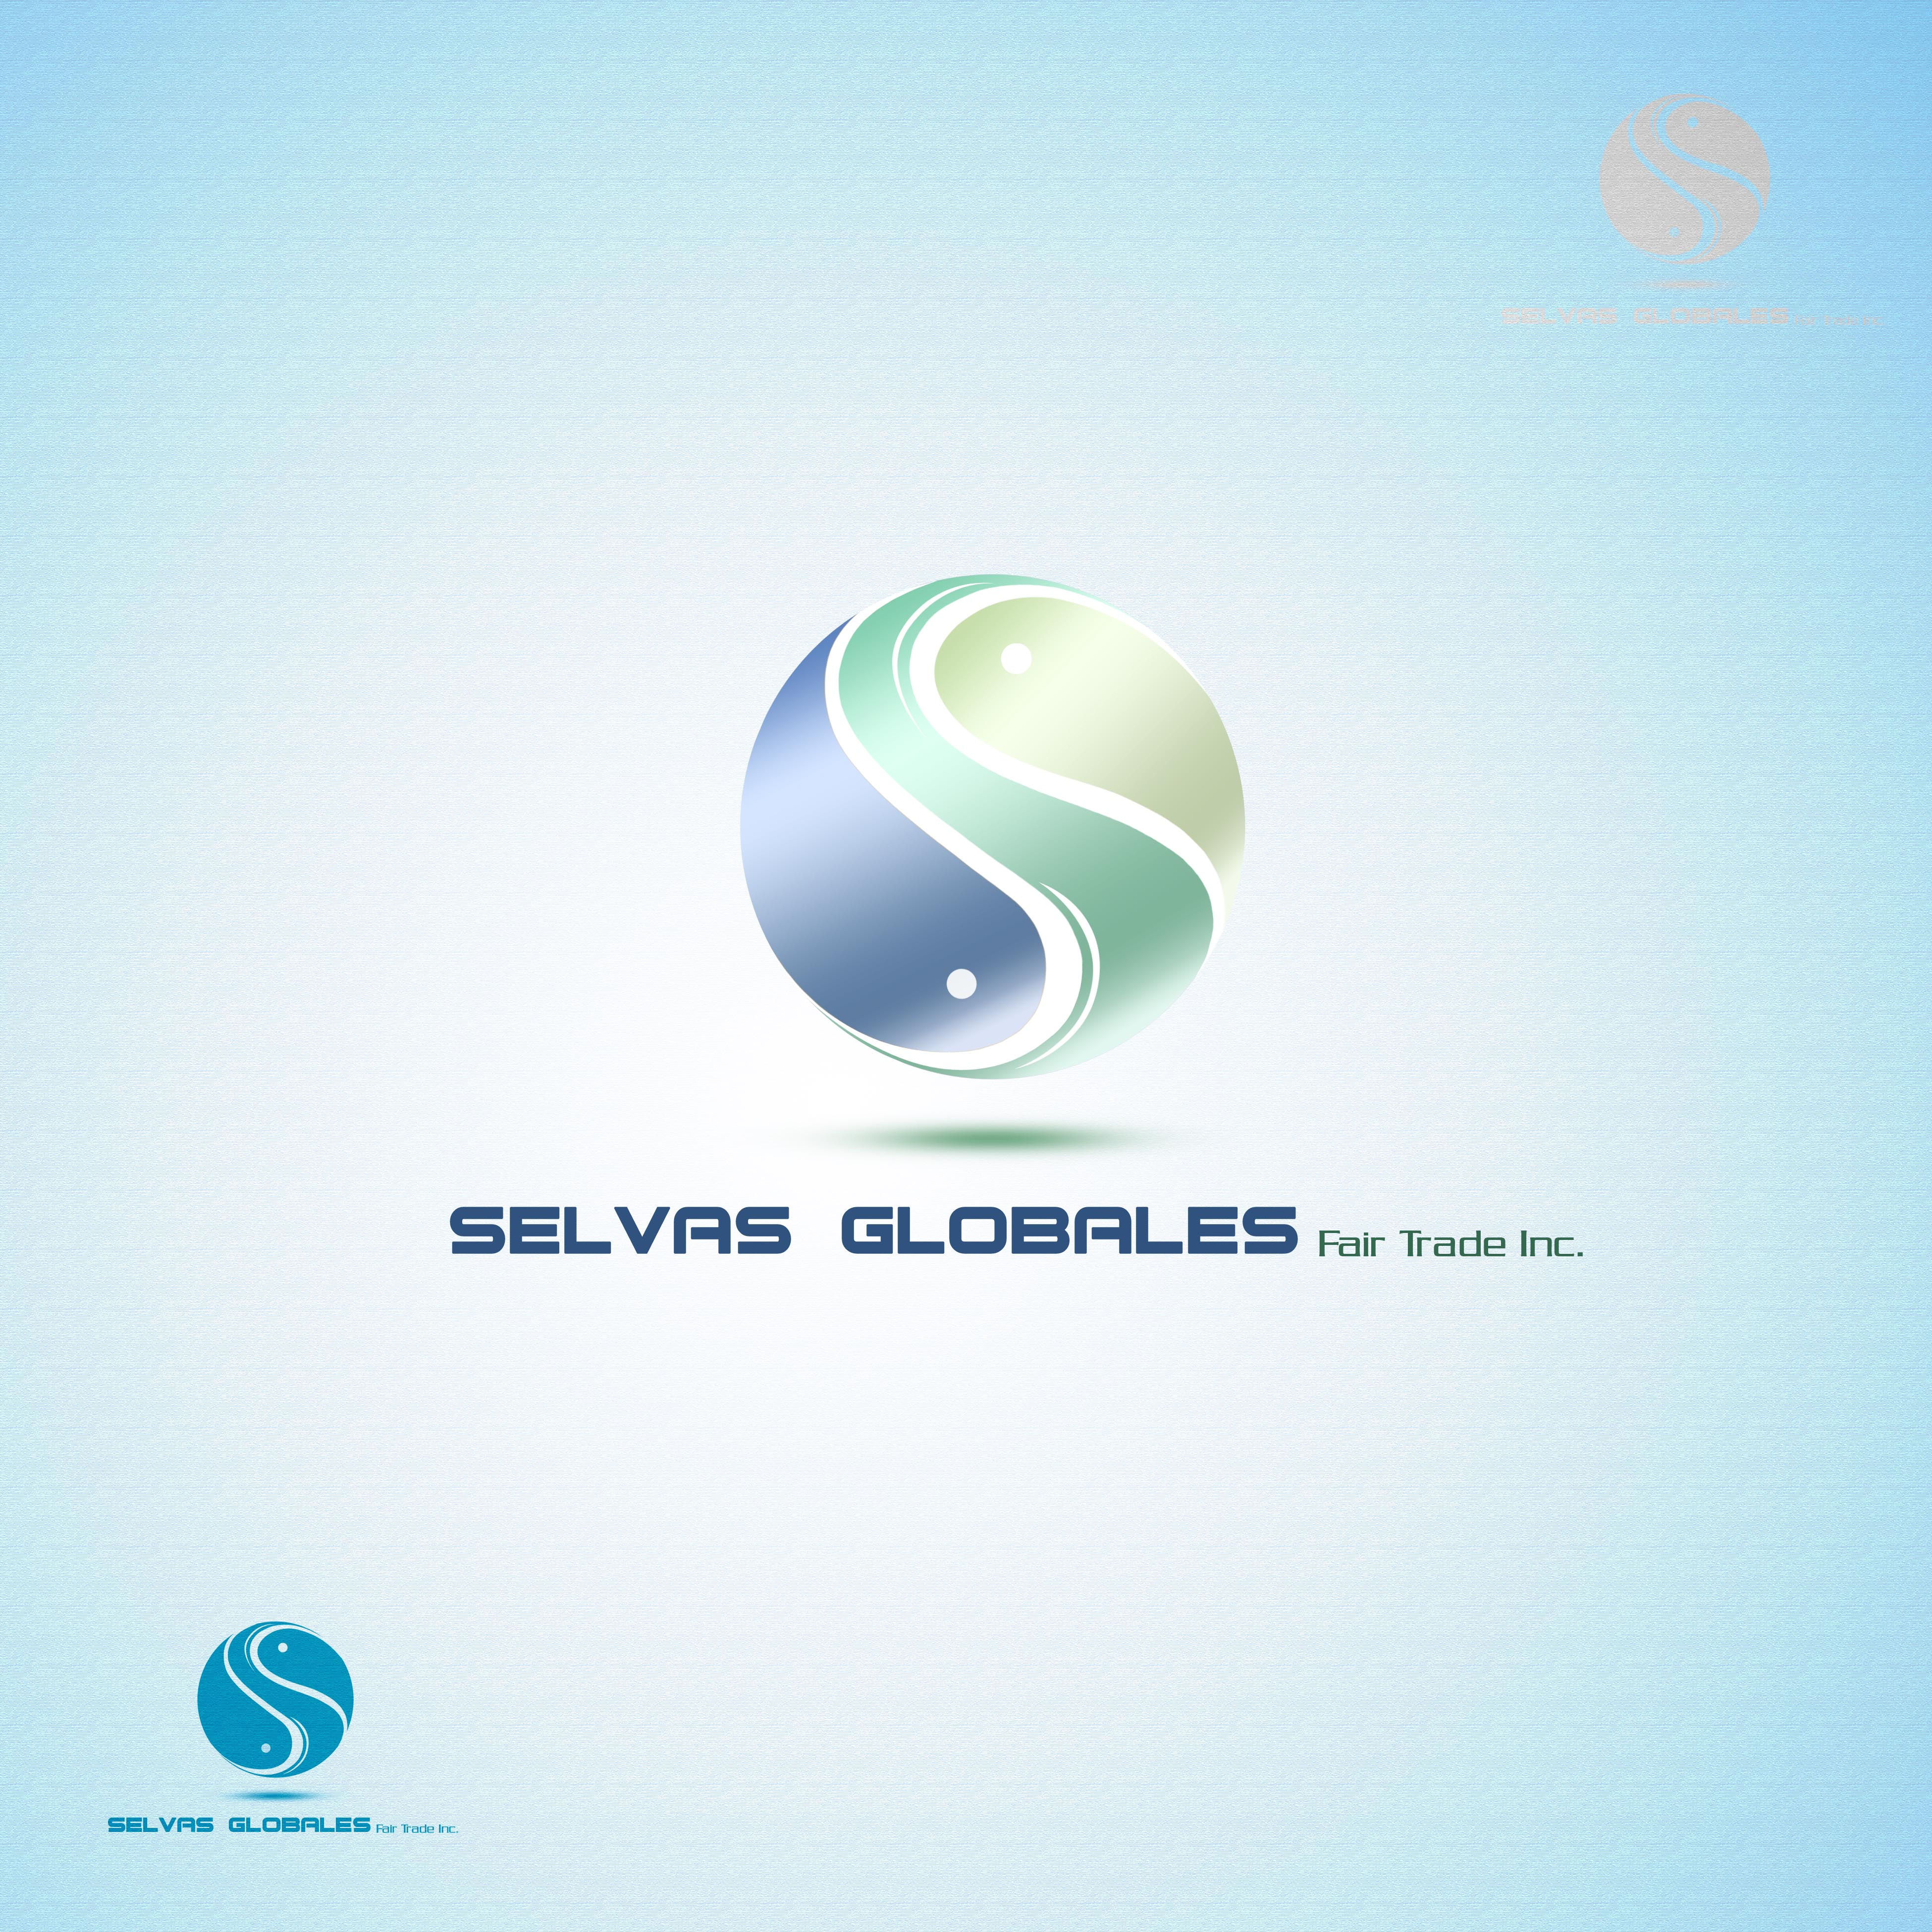 Logo Design by Cesar III Sotto - Entry No. 52 in the Logo Design Contest Captivating Logo Design for Selvas Globales Fair Trade Inc..